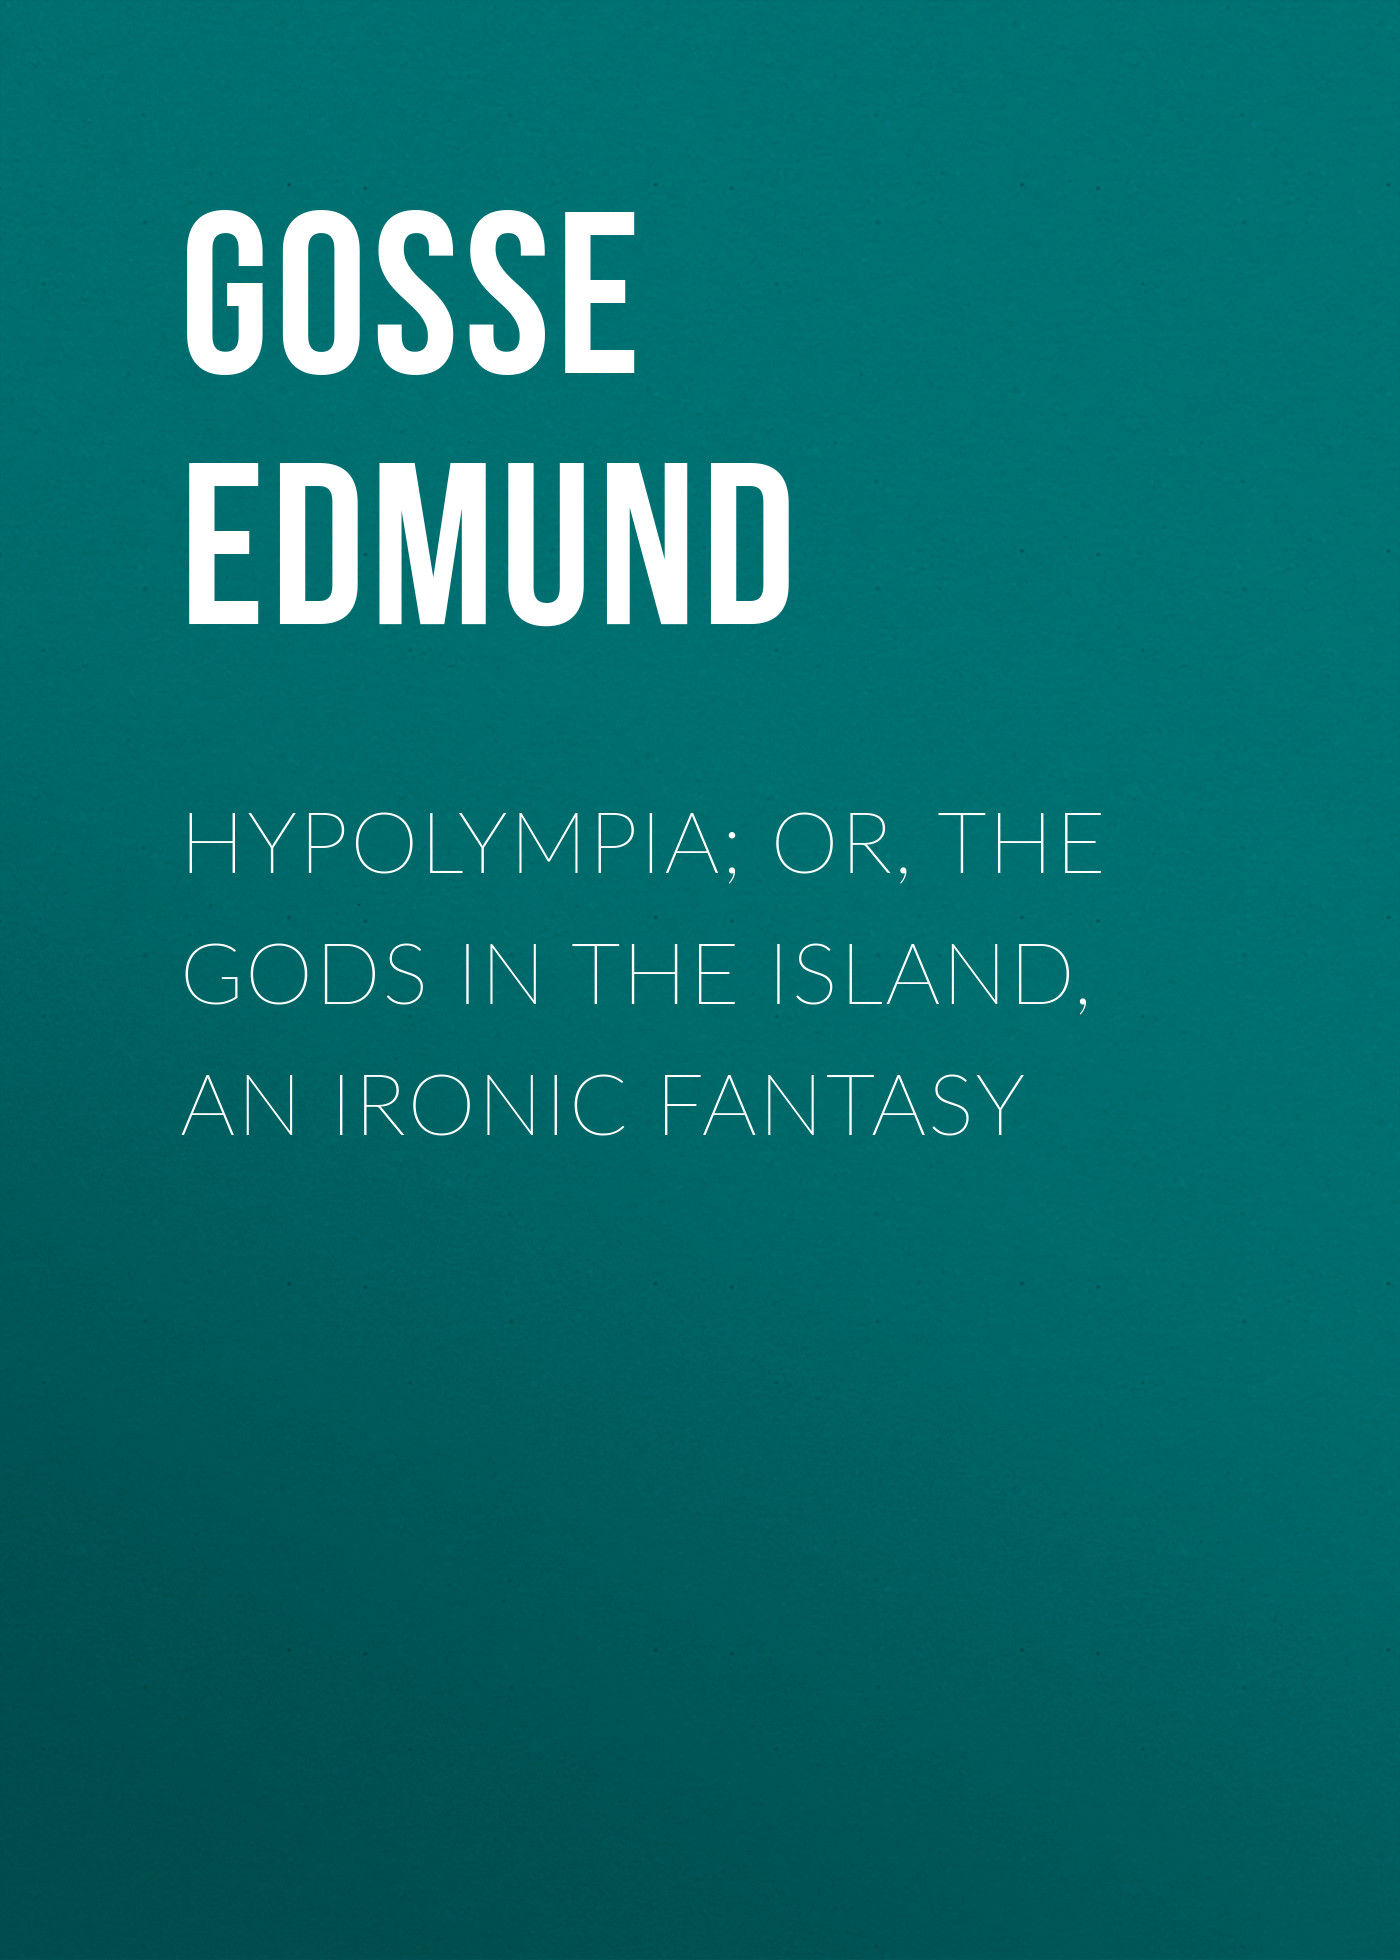 лучшая цена Gosse Edmund Hypolympia; Or, The Gods in the Island, an Ironic Fantasy